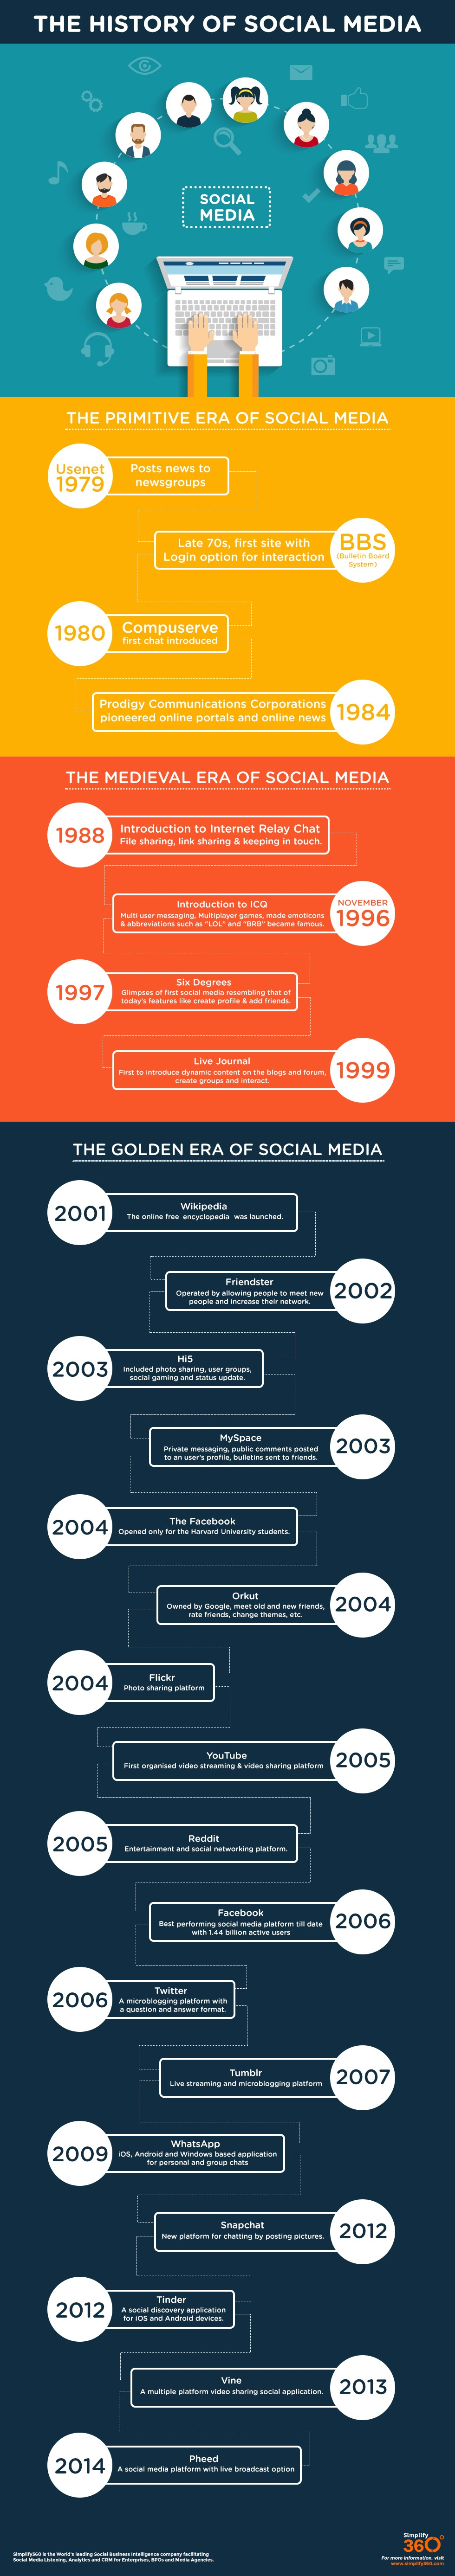 history and impact of social media Despite being a work in progress, social media has certainly come a long way in the past 5 years in the early days of social media, it was viewed as a fad that was all the rage among teenagers.